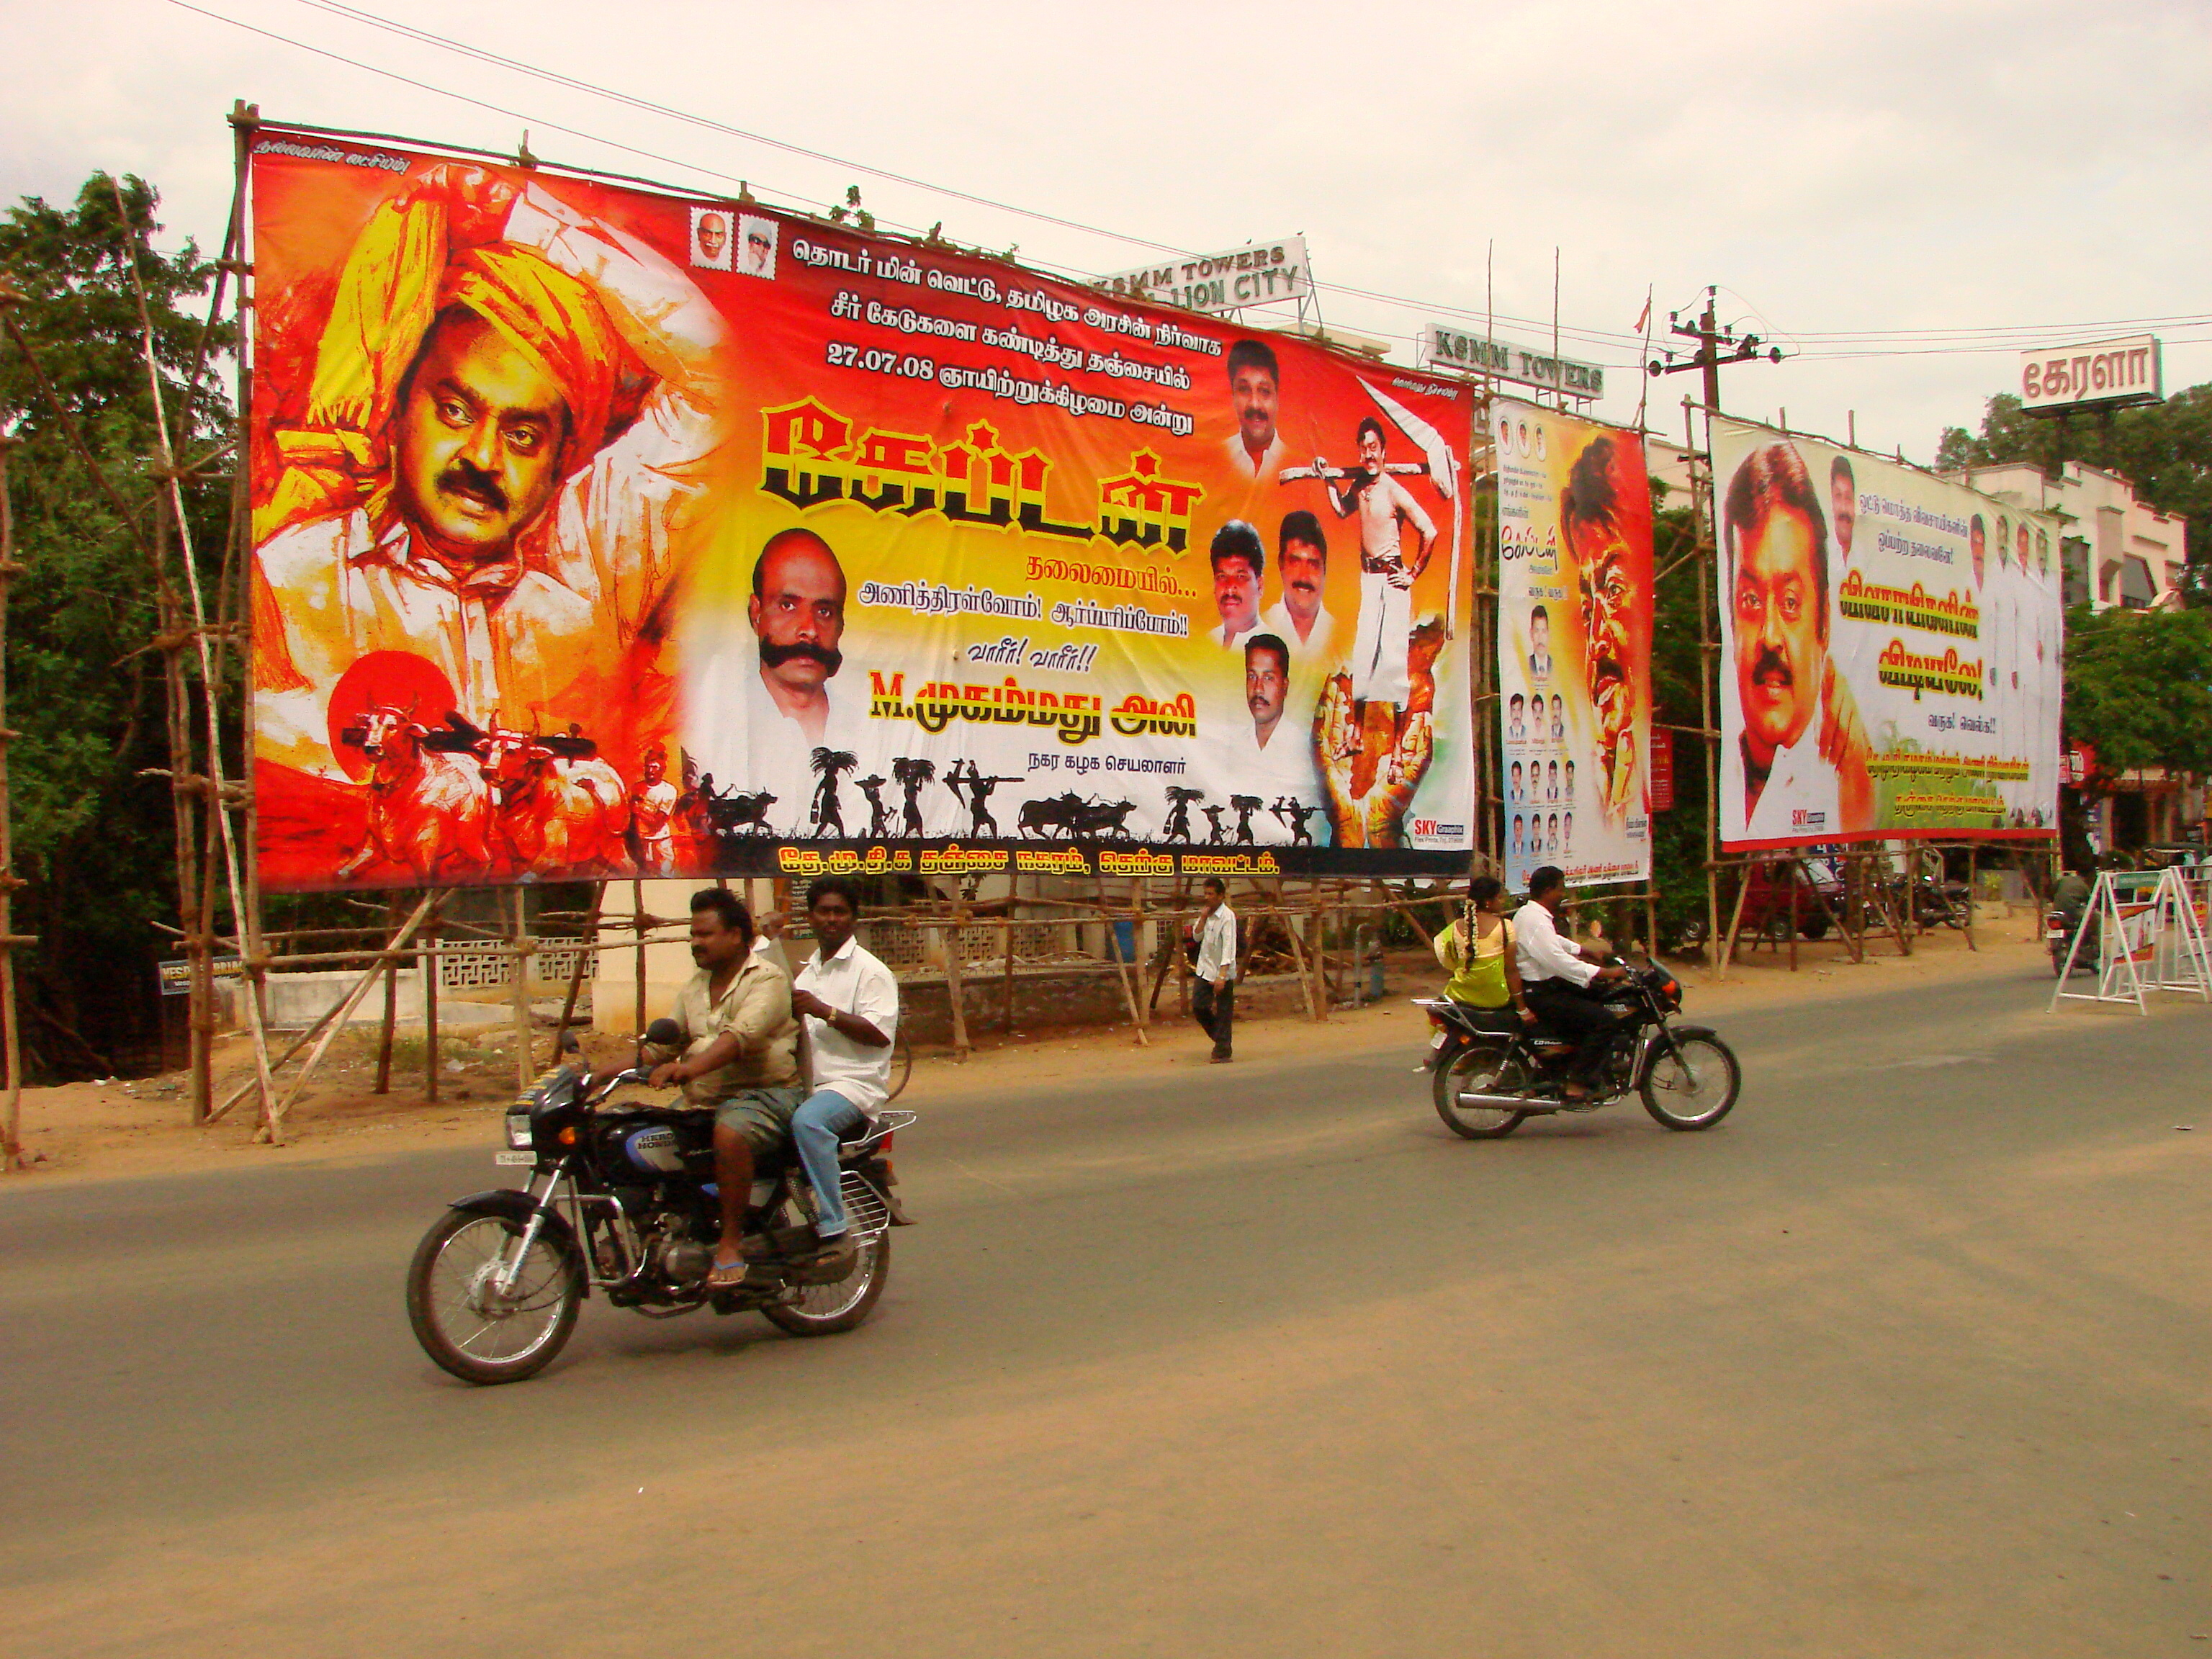 Street_Scene_with_Movie_Posters_-_Thanjavur_-_India.jpg